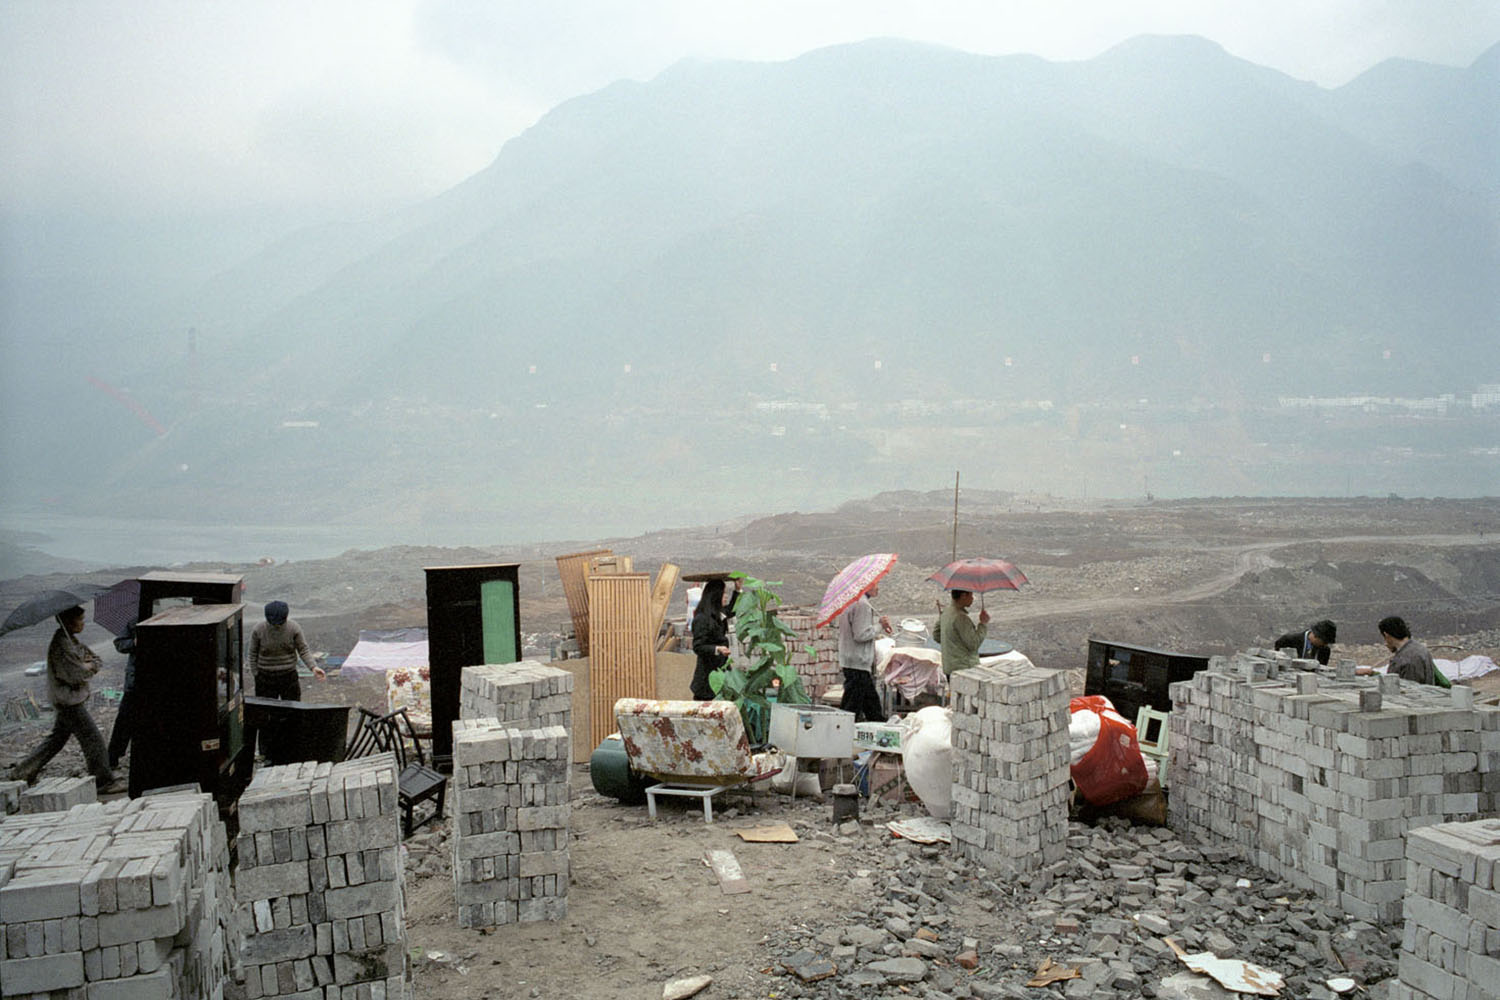 The last remaining family moves home. In the background is a levelled construction site, this used to be the site of the old city. Wushan, China. 2003.